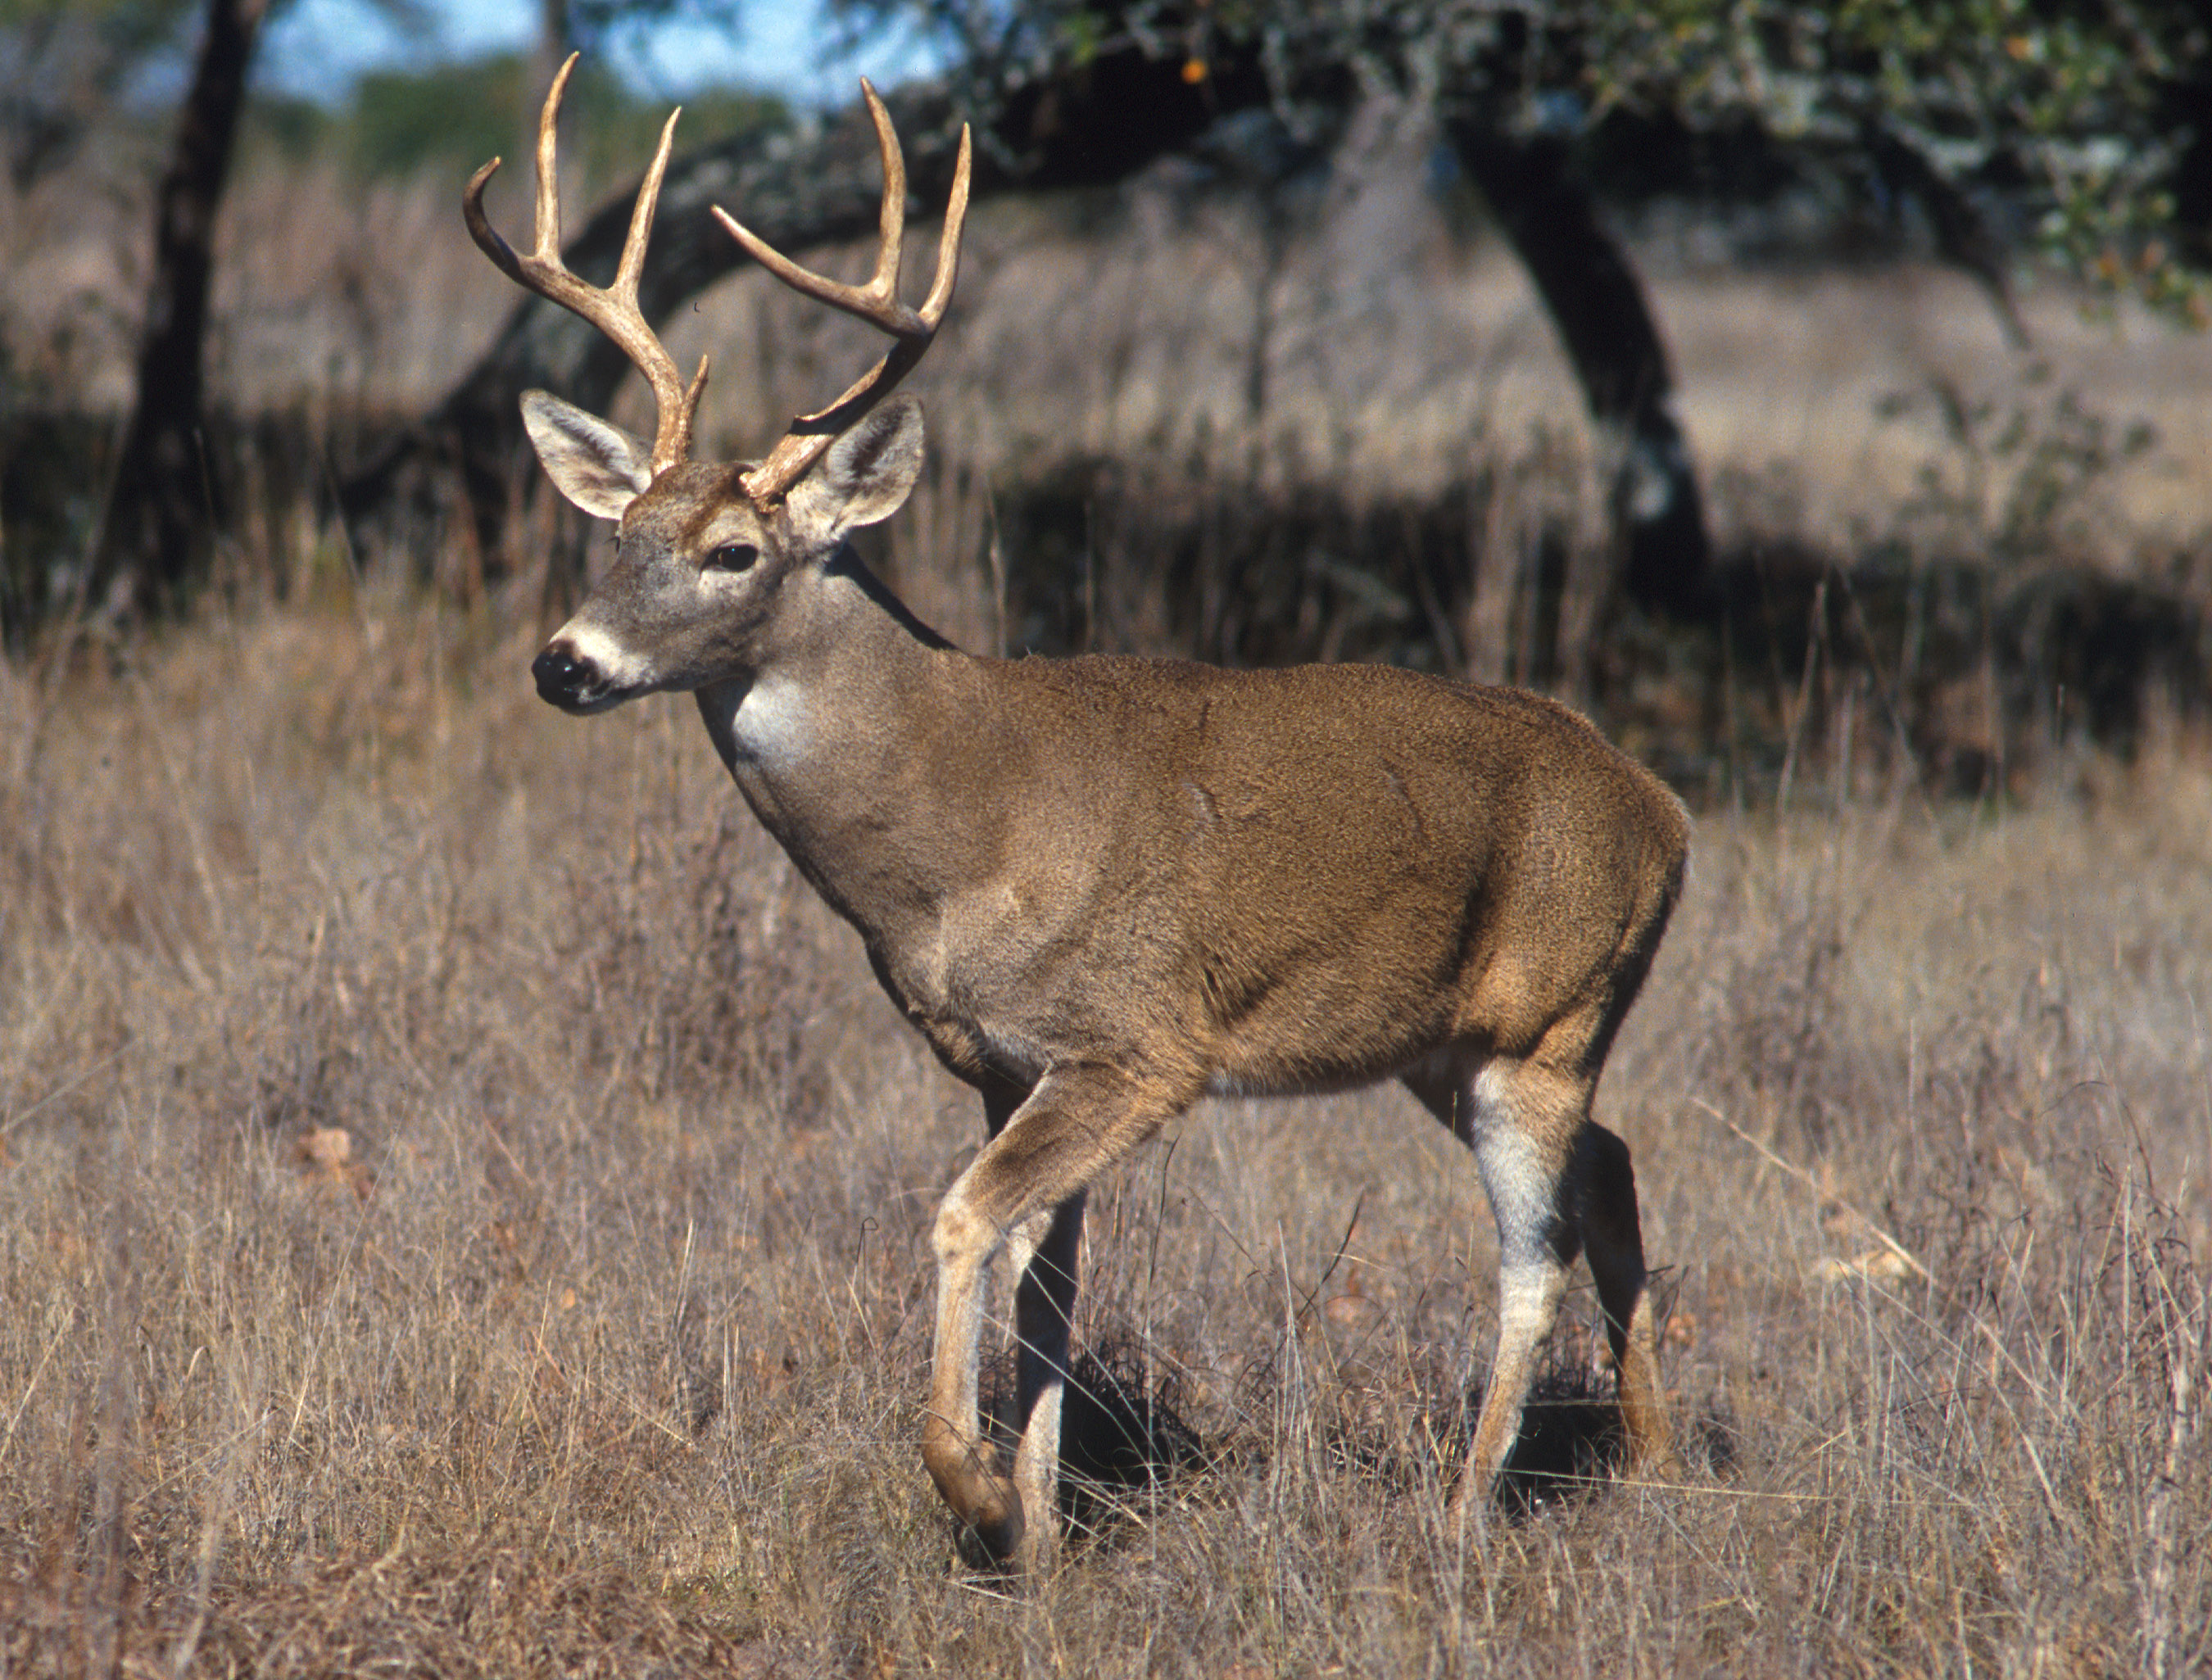 Adult white tailed deer